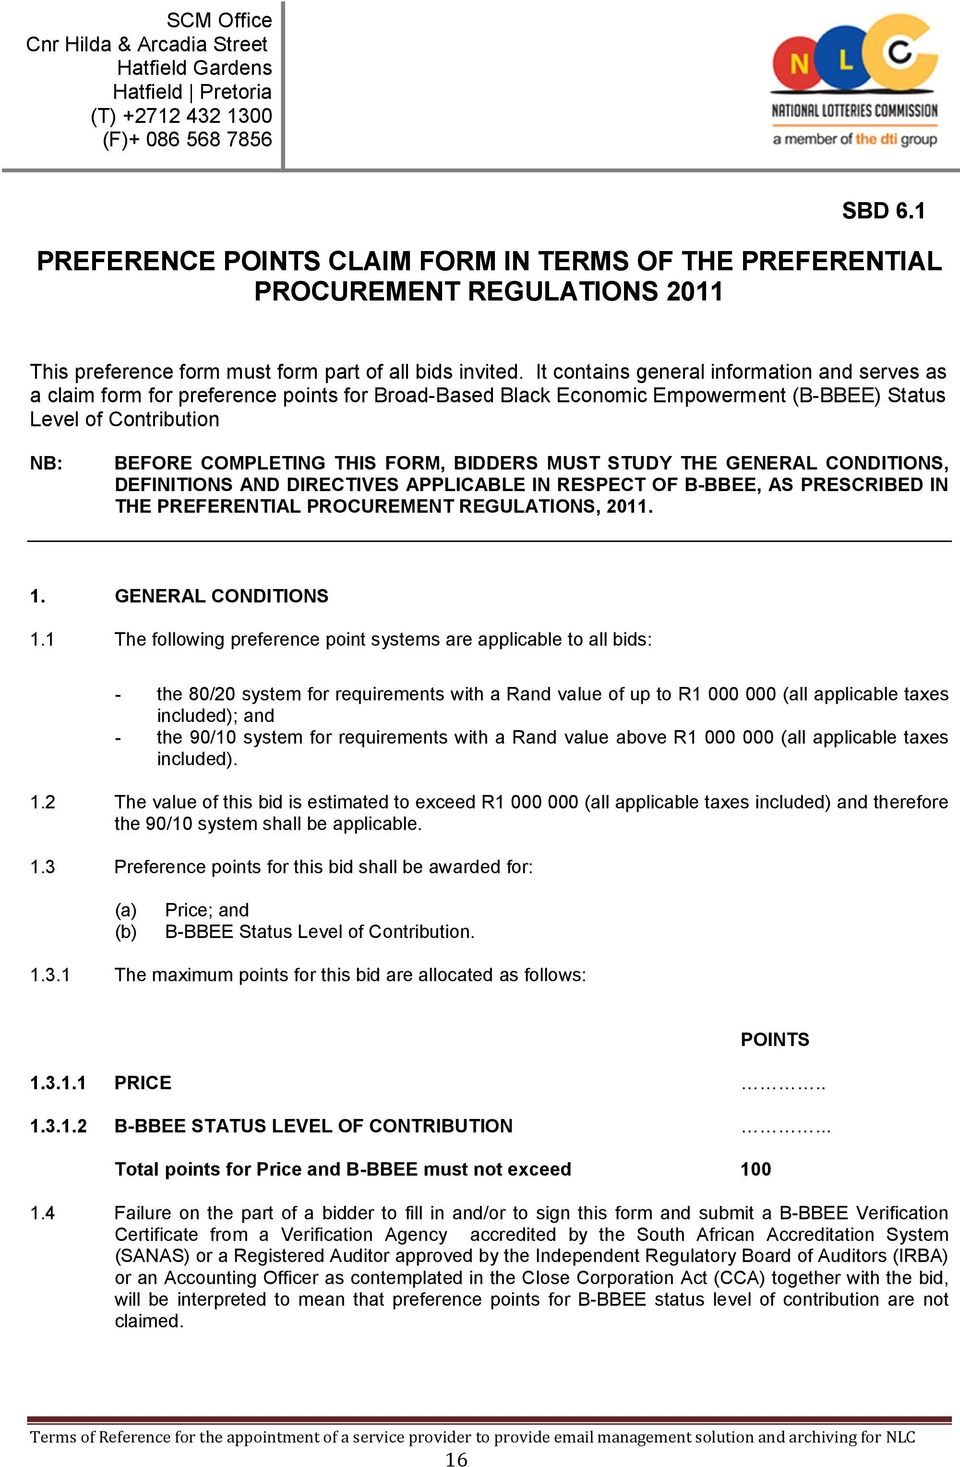 BIDDERS MUST STUDY THE GENERAL CONDITIONS, DEFINITIONS AND DIRECTIVES APPLICABLE IN RESPECT OF B-BBEE, AS PRESCRIBED IN THE PREFERENTIAL PROCUREMENT REGULATIONS, 2011. 1. GENERAL CONDITIONS 1.